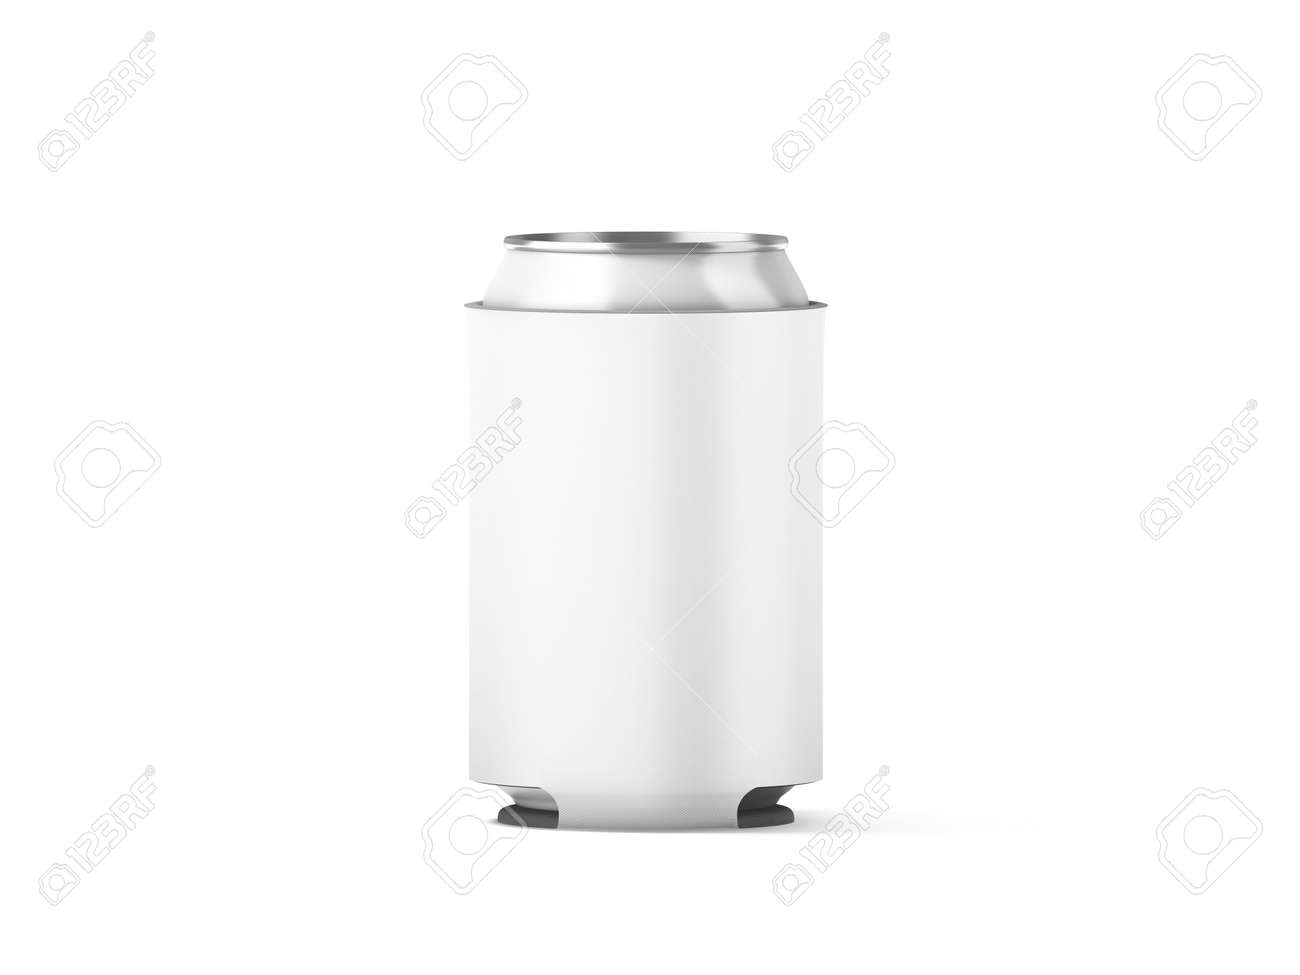 Blank White Collapsible Beer Can Koozie Mockup Isolated, 3d ...